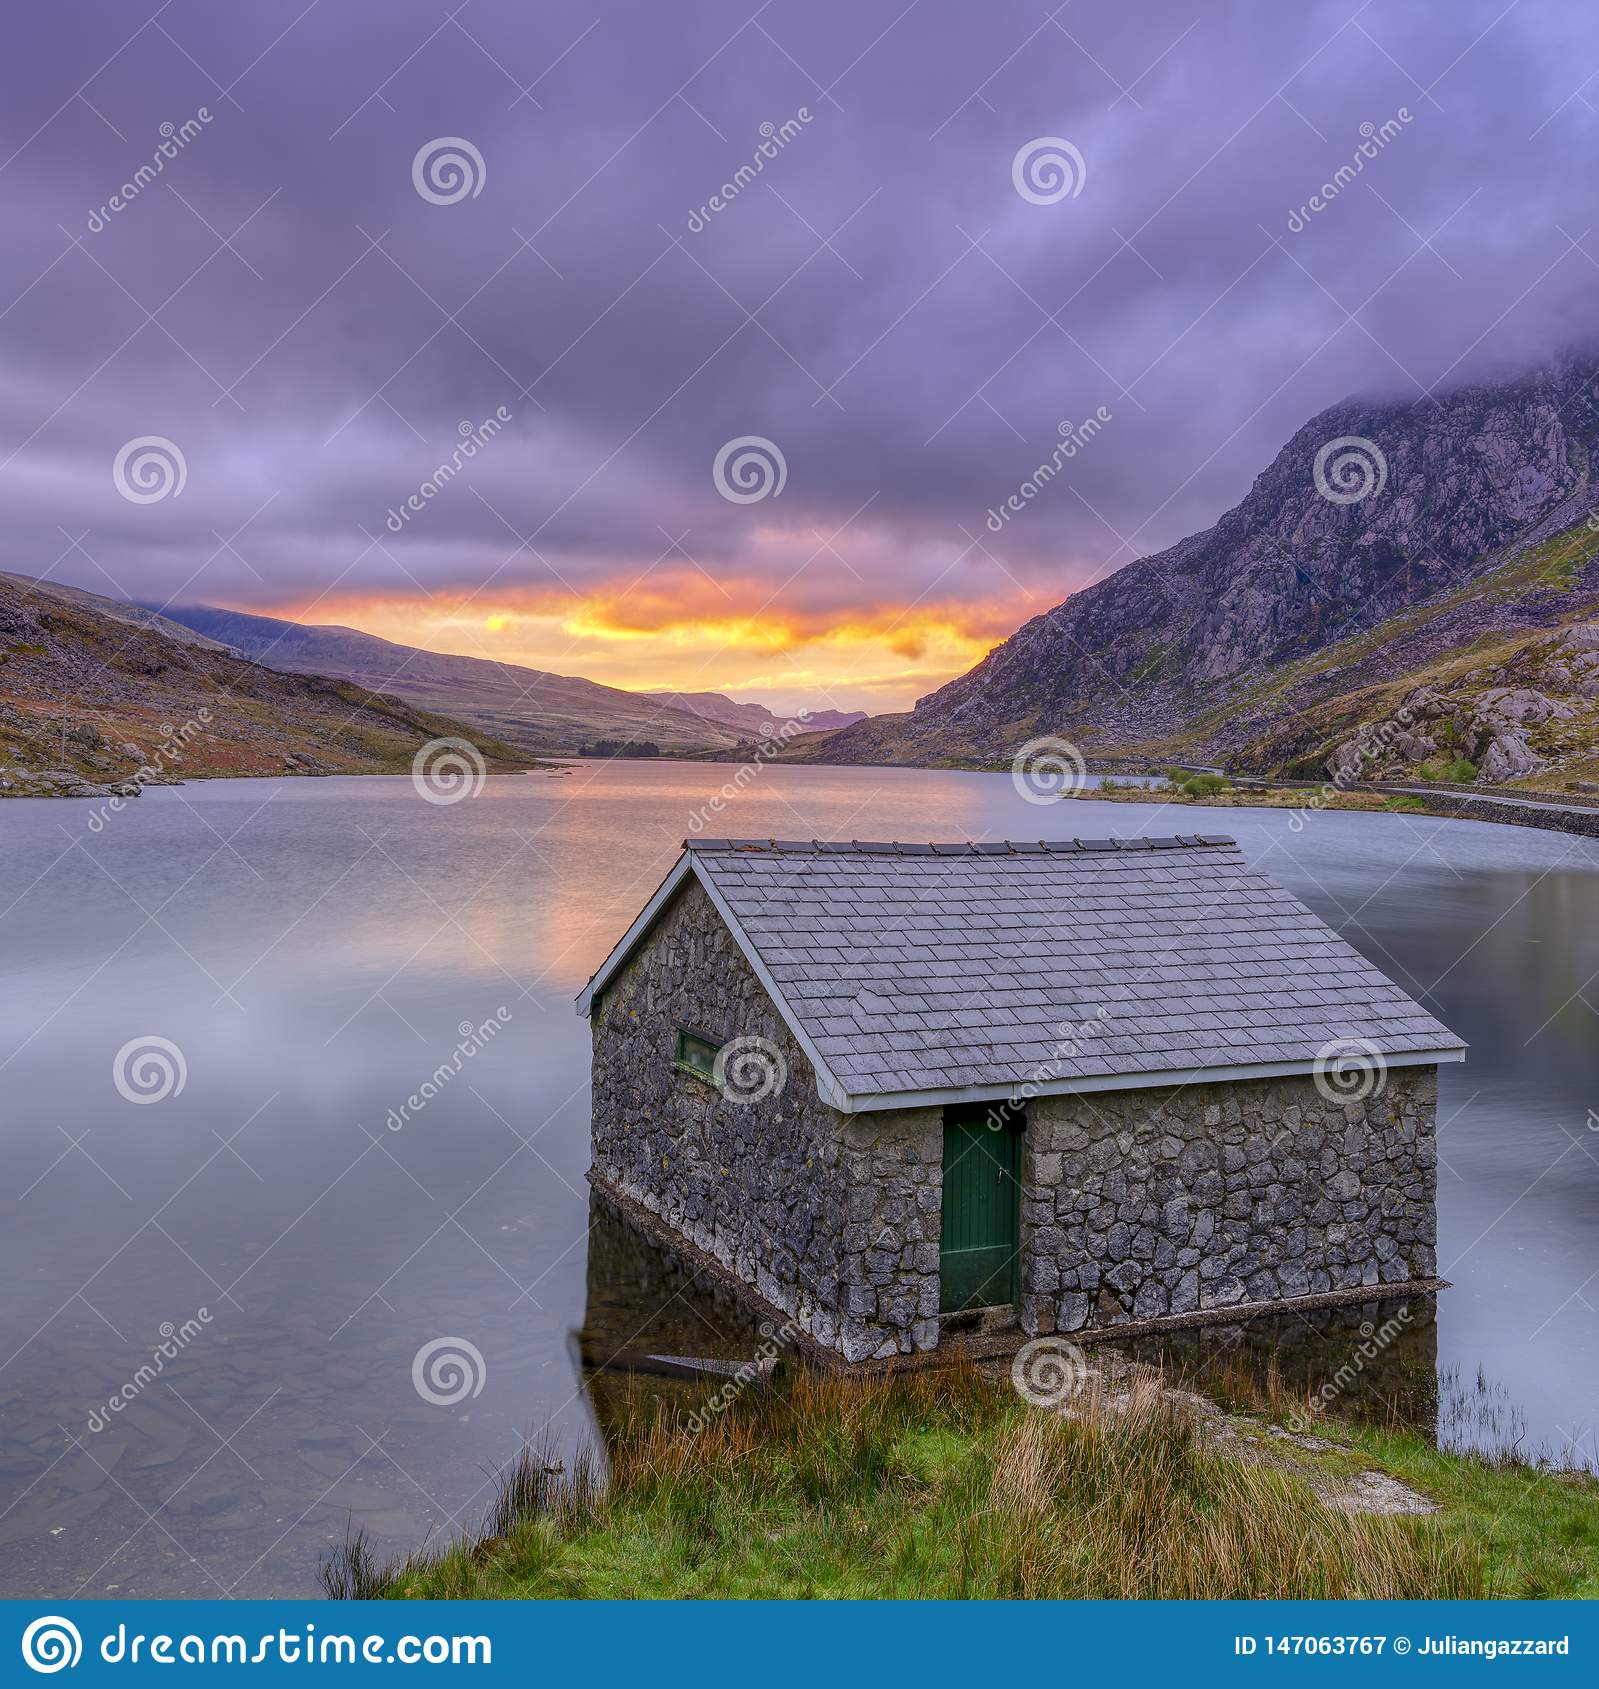 Sunrise over Llyn Ogwen and boathouse, Snowdonia National Park